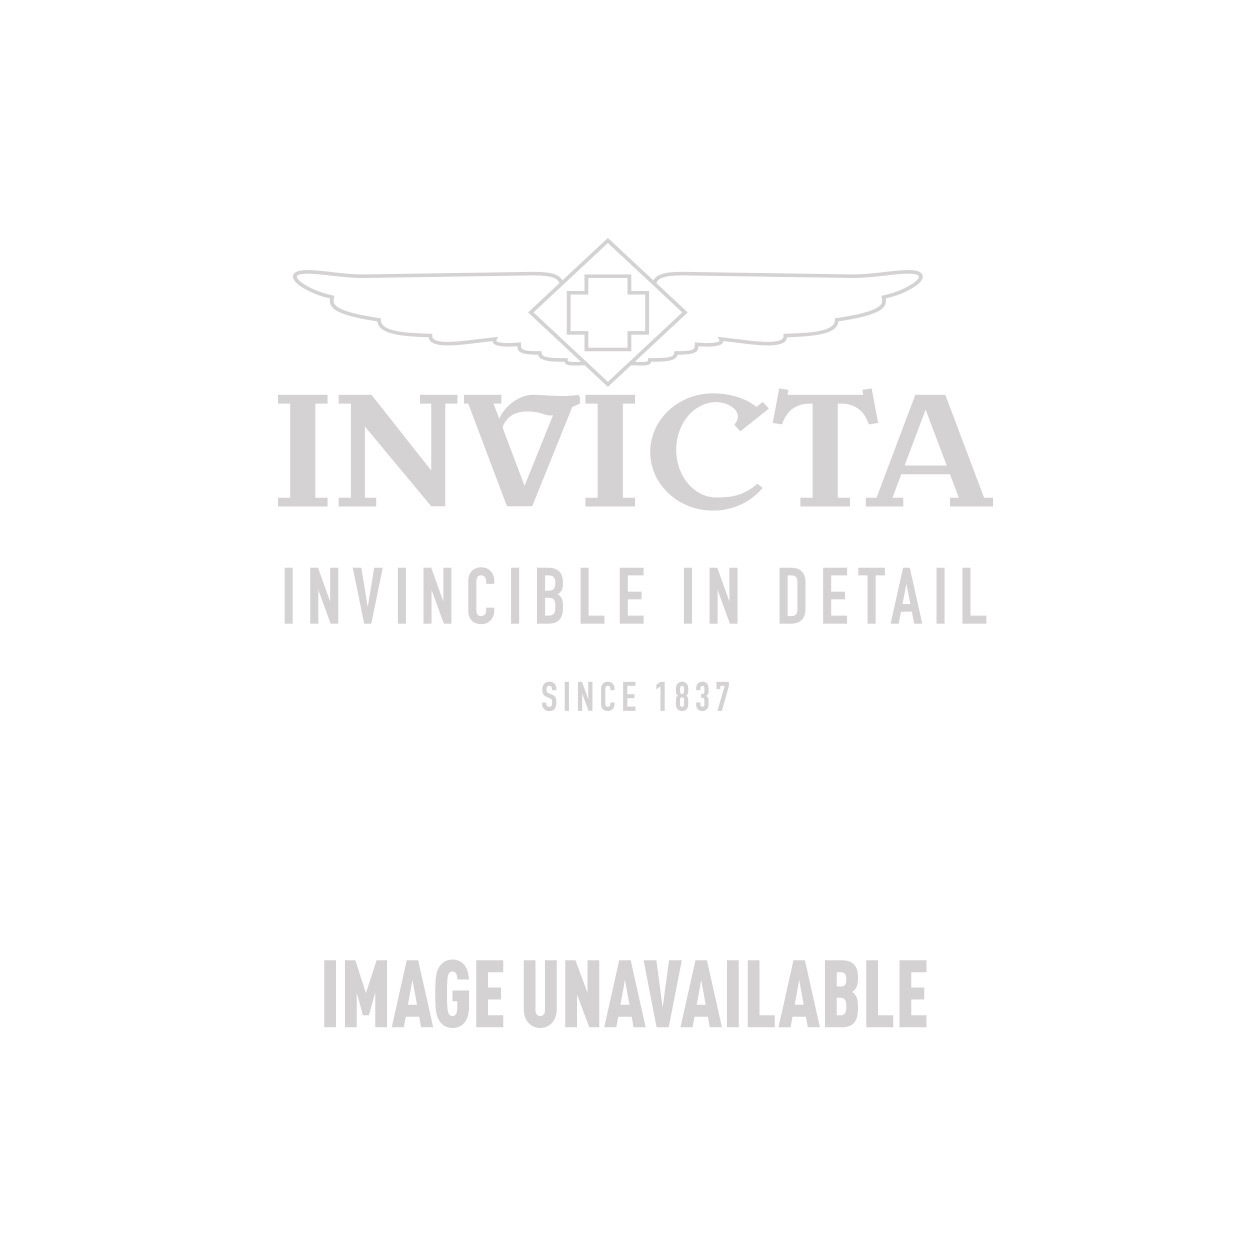 Invicta S. Coifman Swiss Movement Quartz Watch - Stainless Steel case Stainless Steel band - Model SC0267